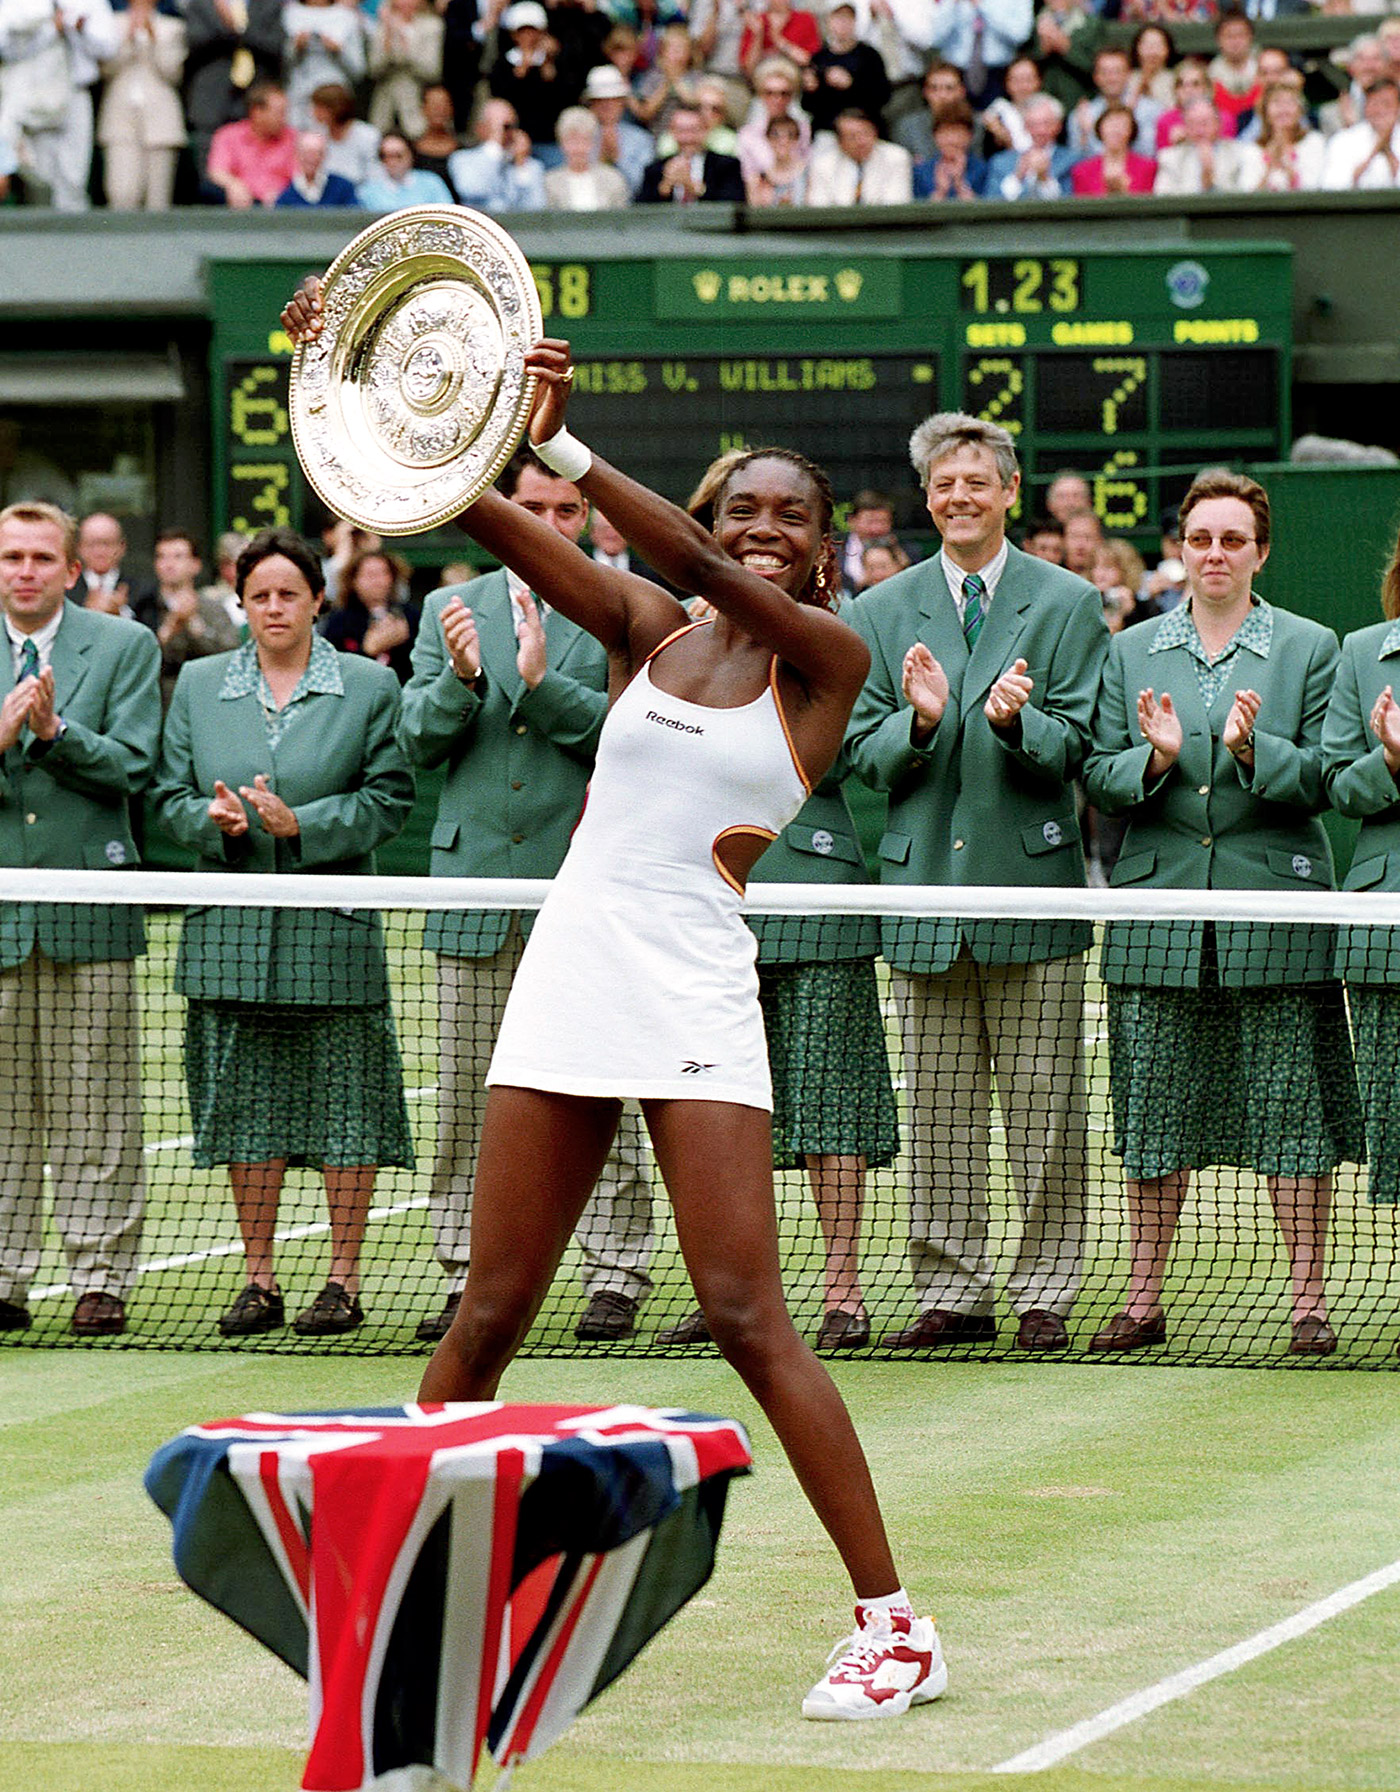 Pursuing Perfection: Venus Williams